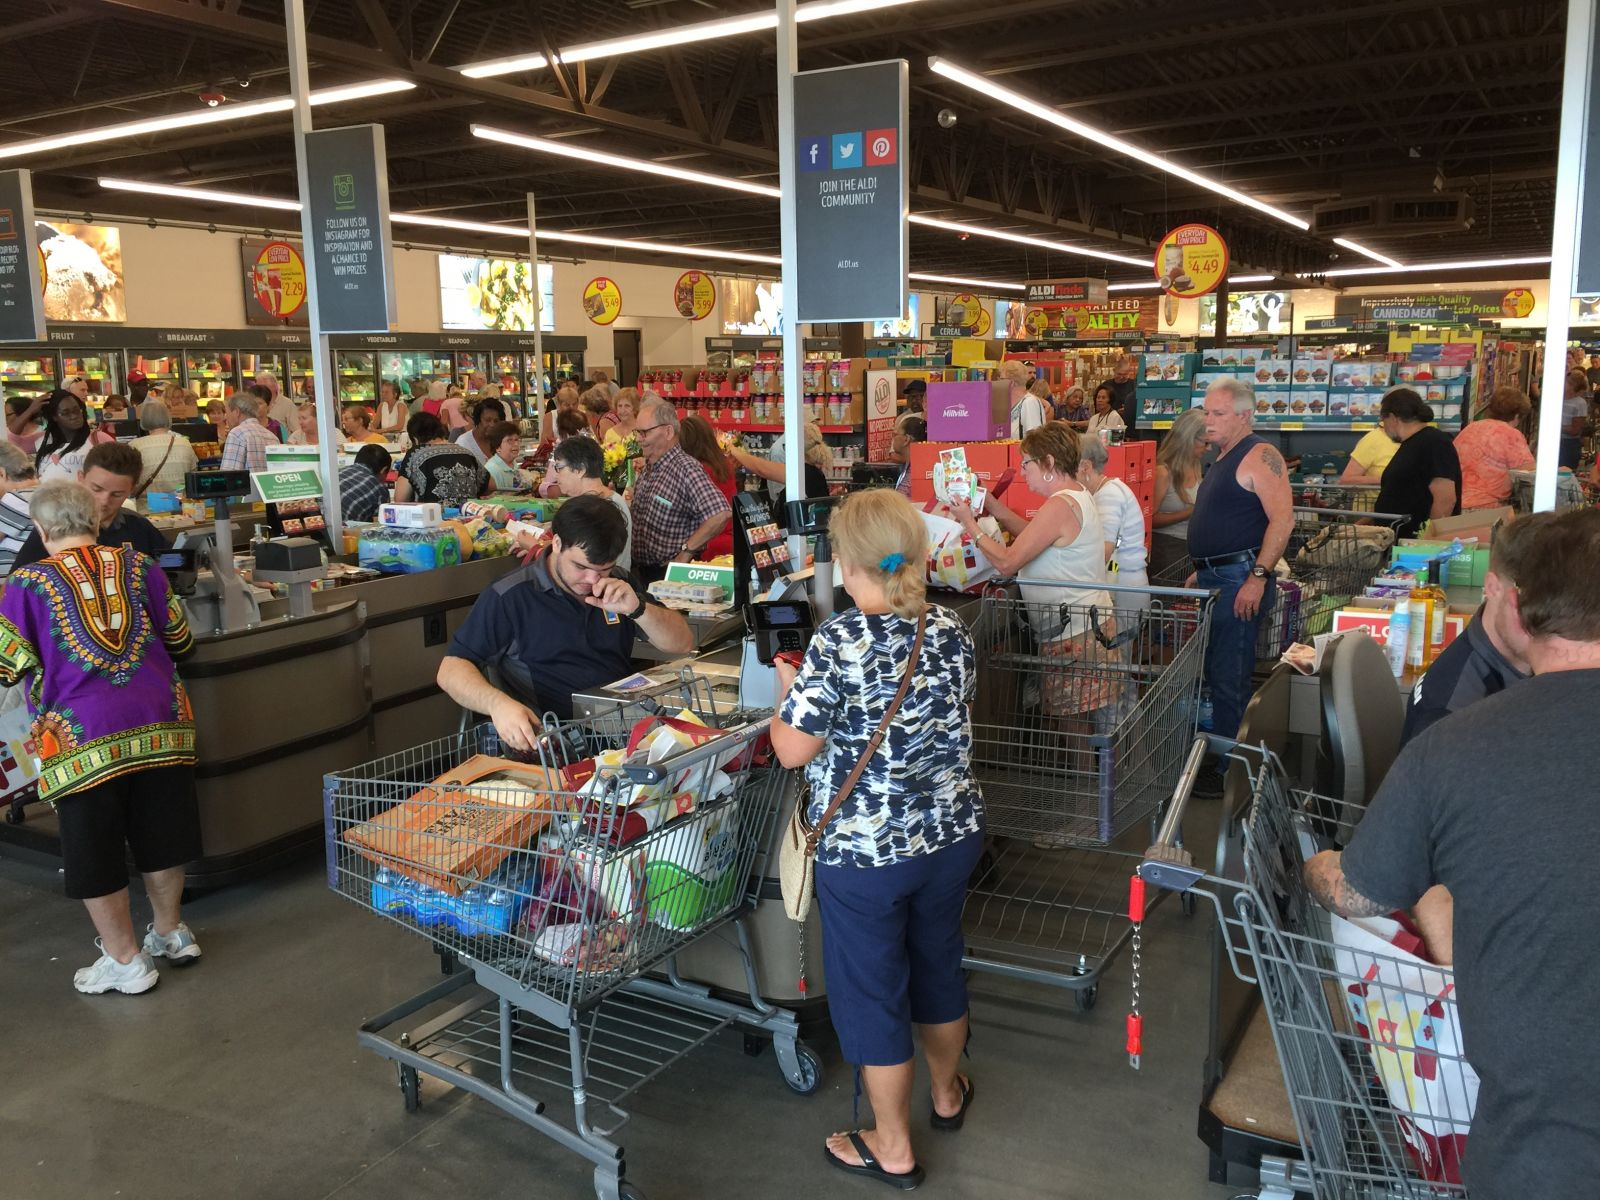 Aldi store in Palm Coast on opening day